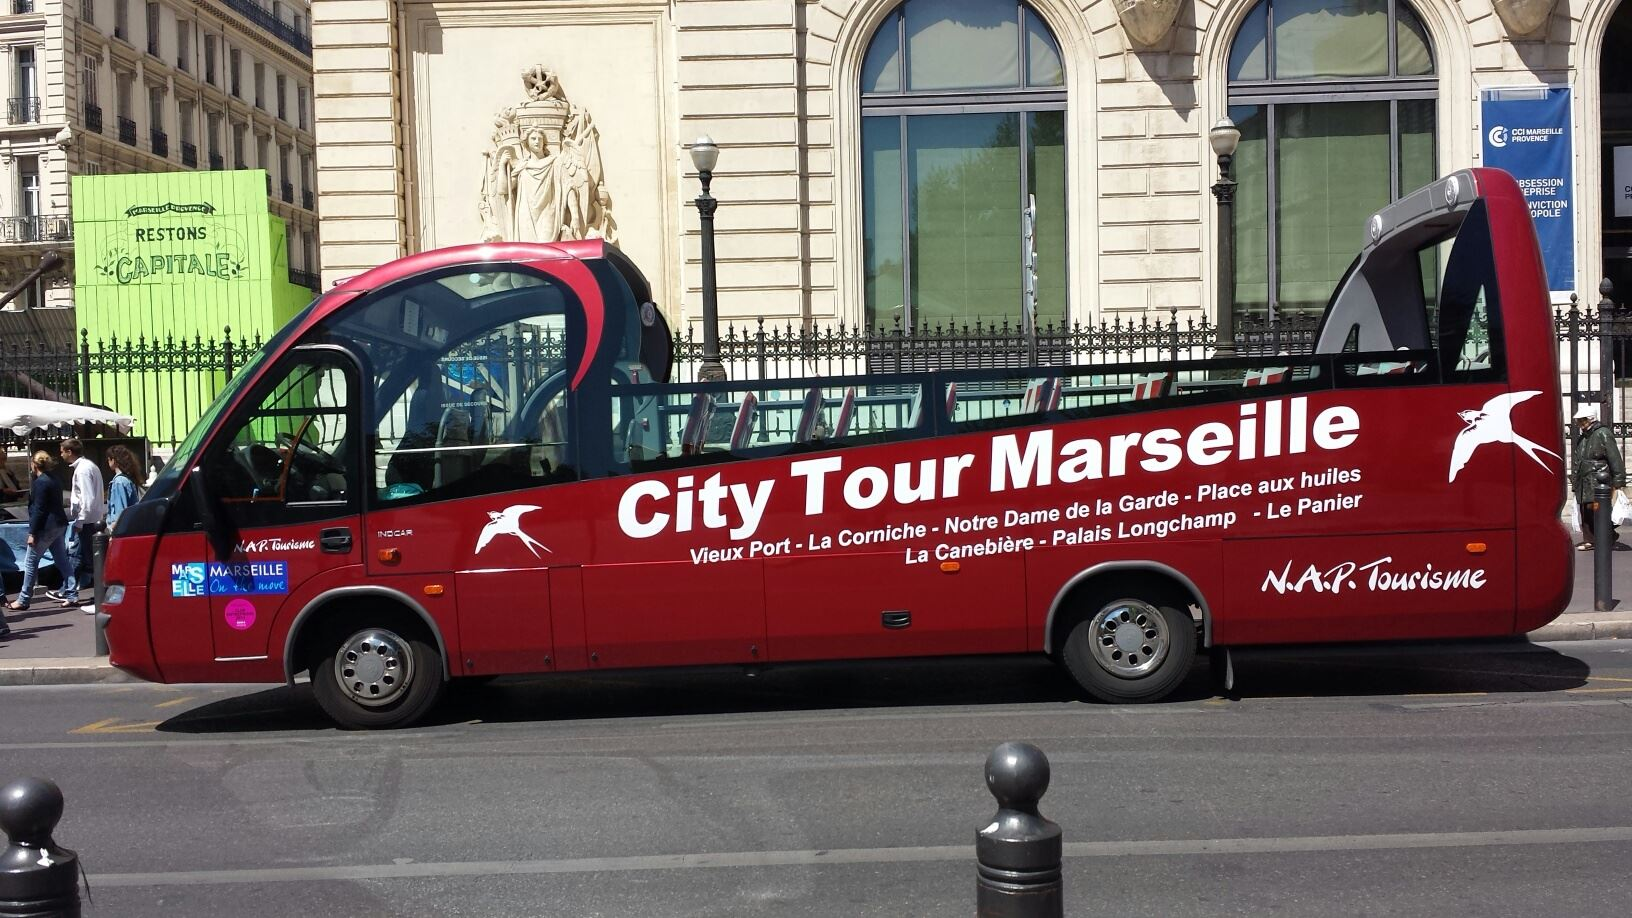 City Tour Marseille